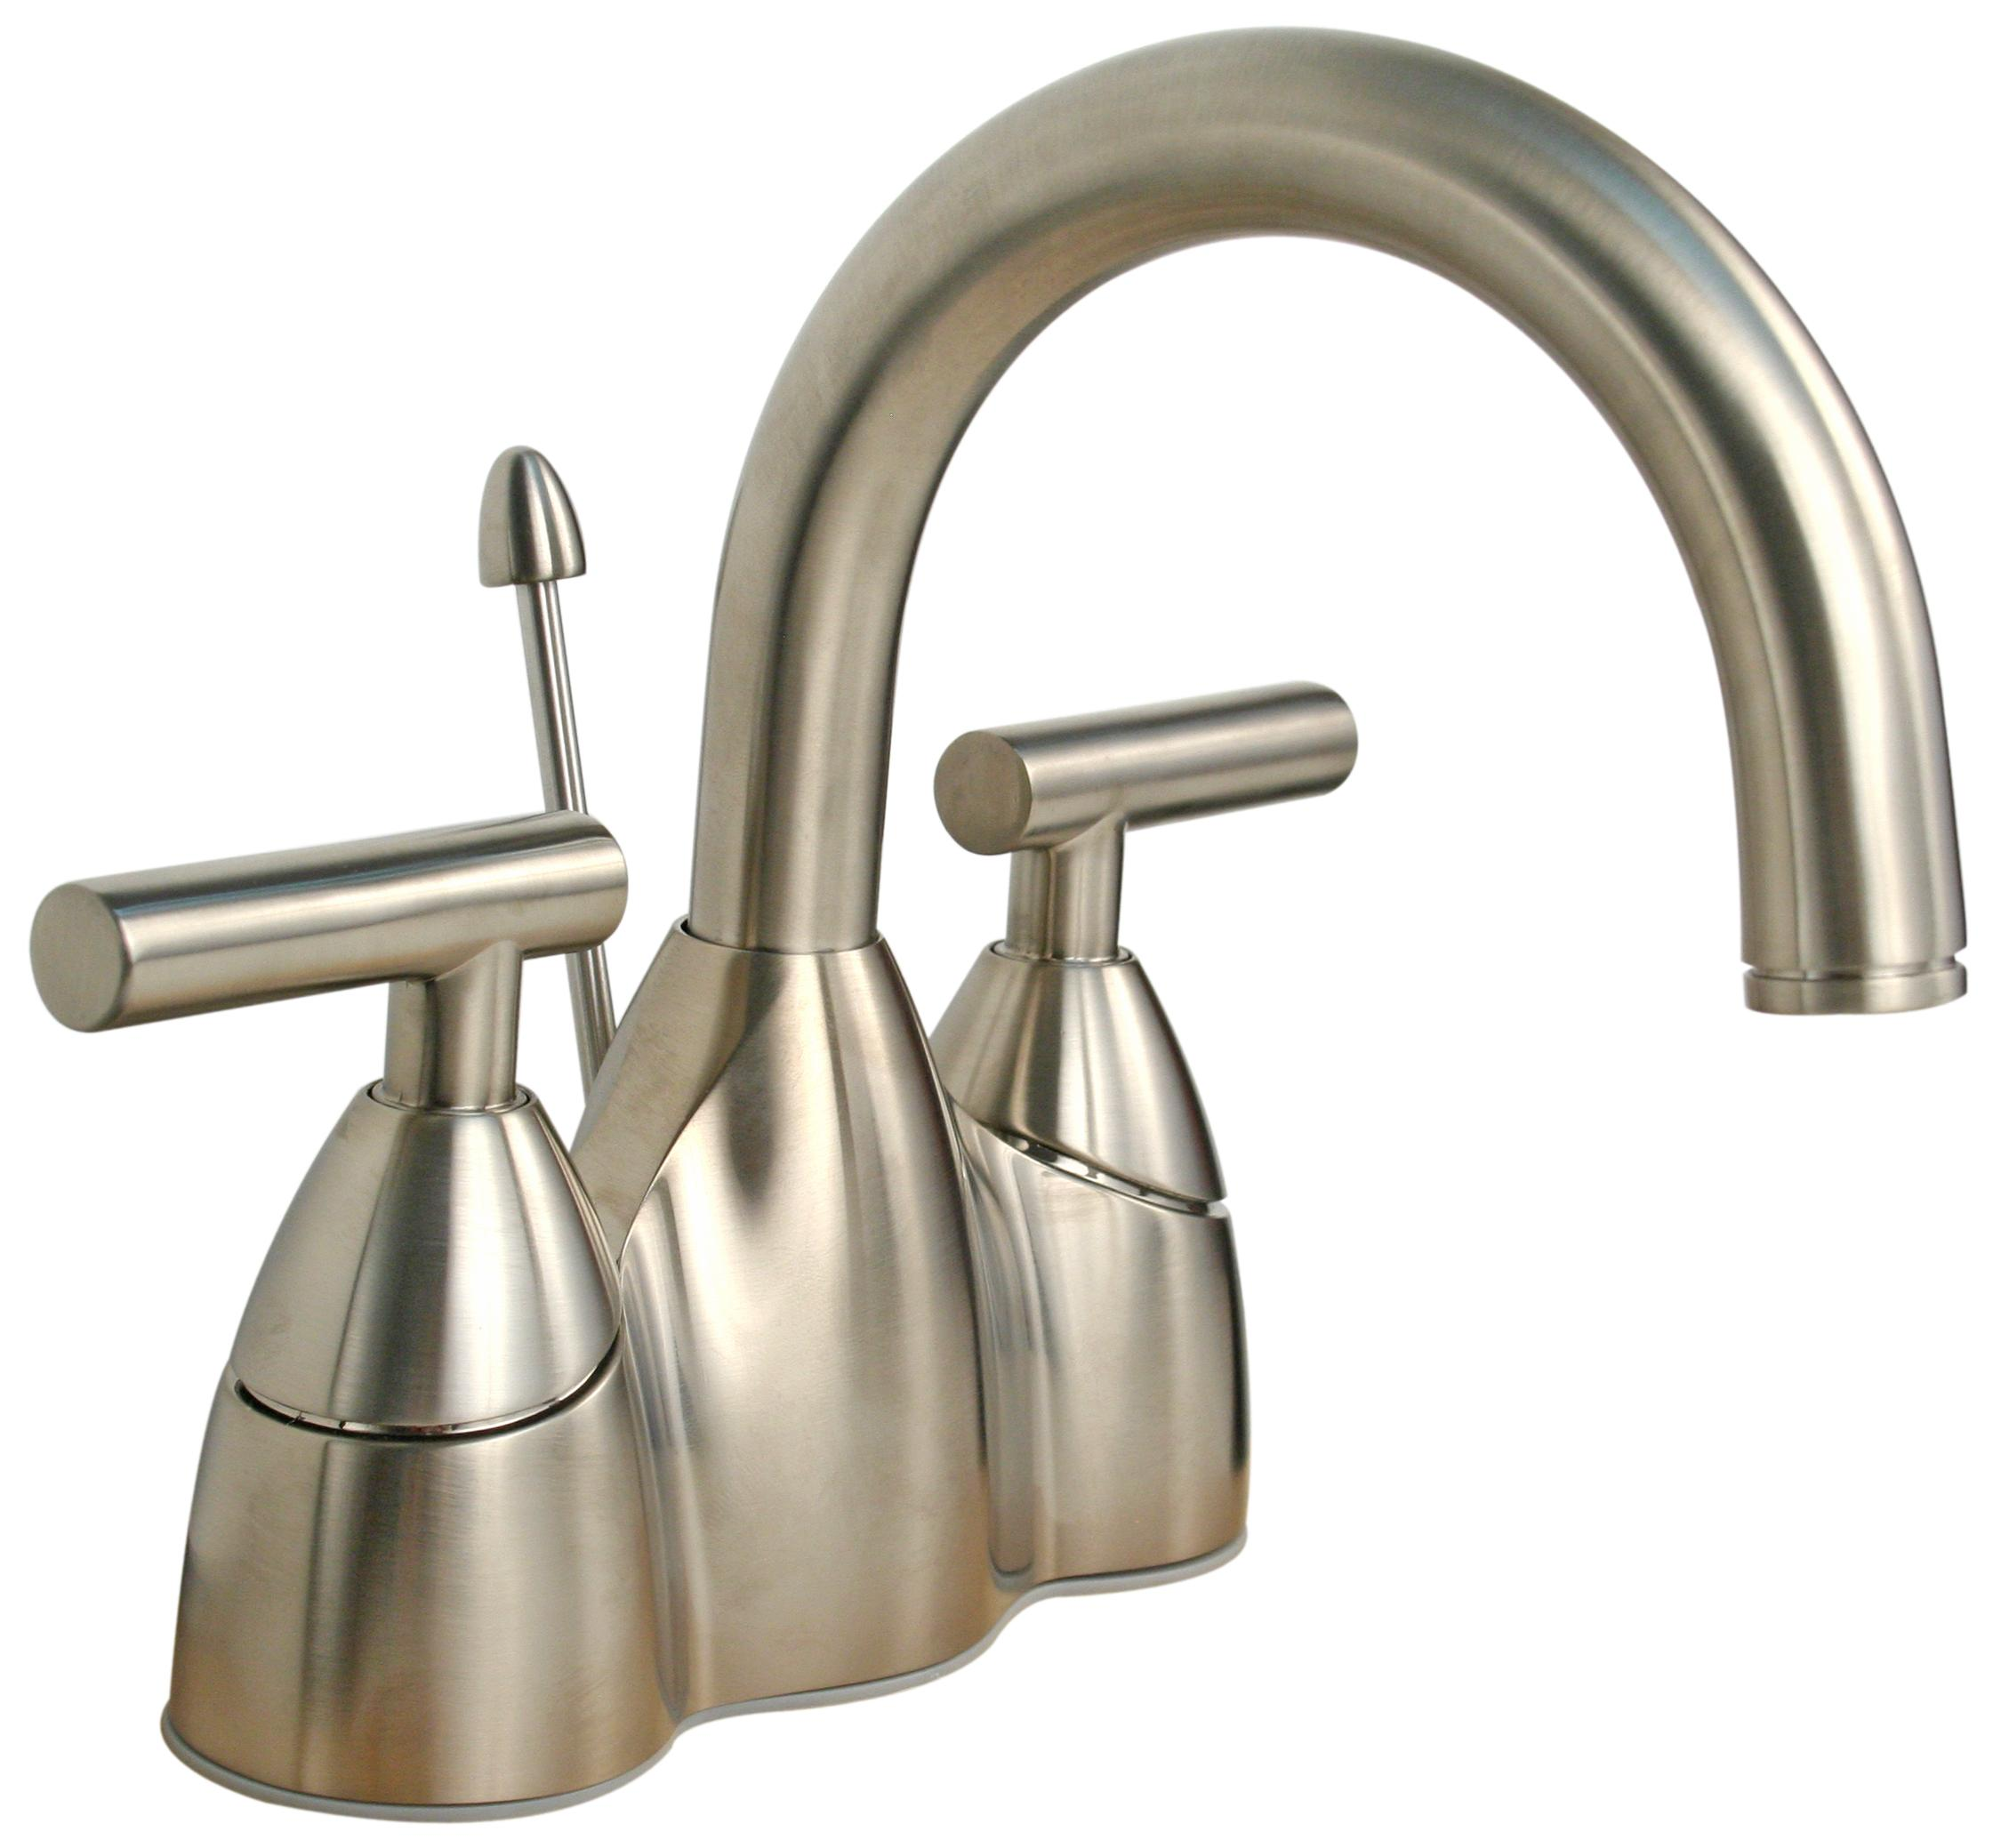 Wonderful Price Pfister Contempra Brushed Nickel Centerset Bathroom Faucet